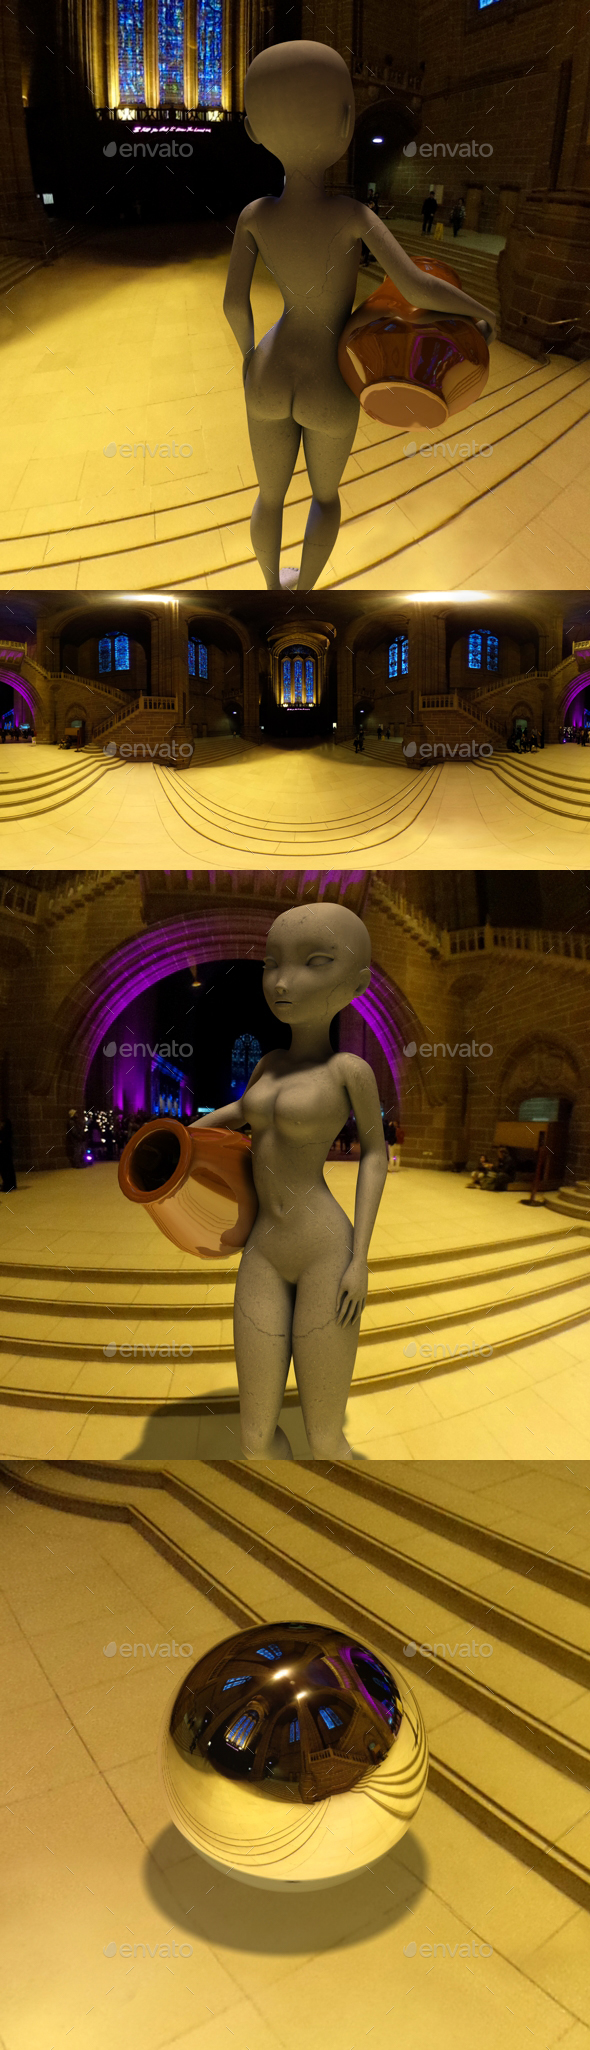 Cathedral Hall HDRI - 3DOcean Item for Sale